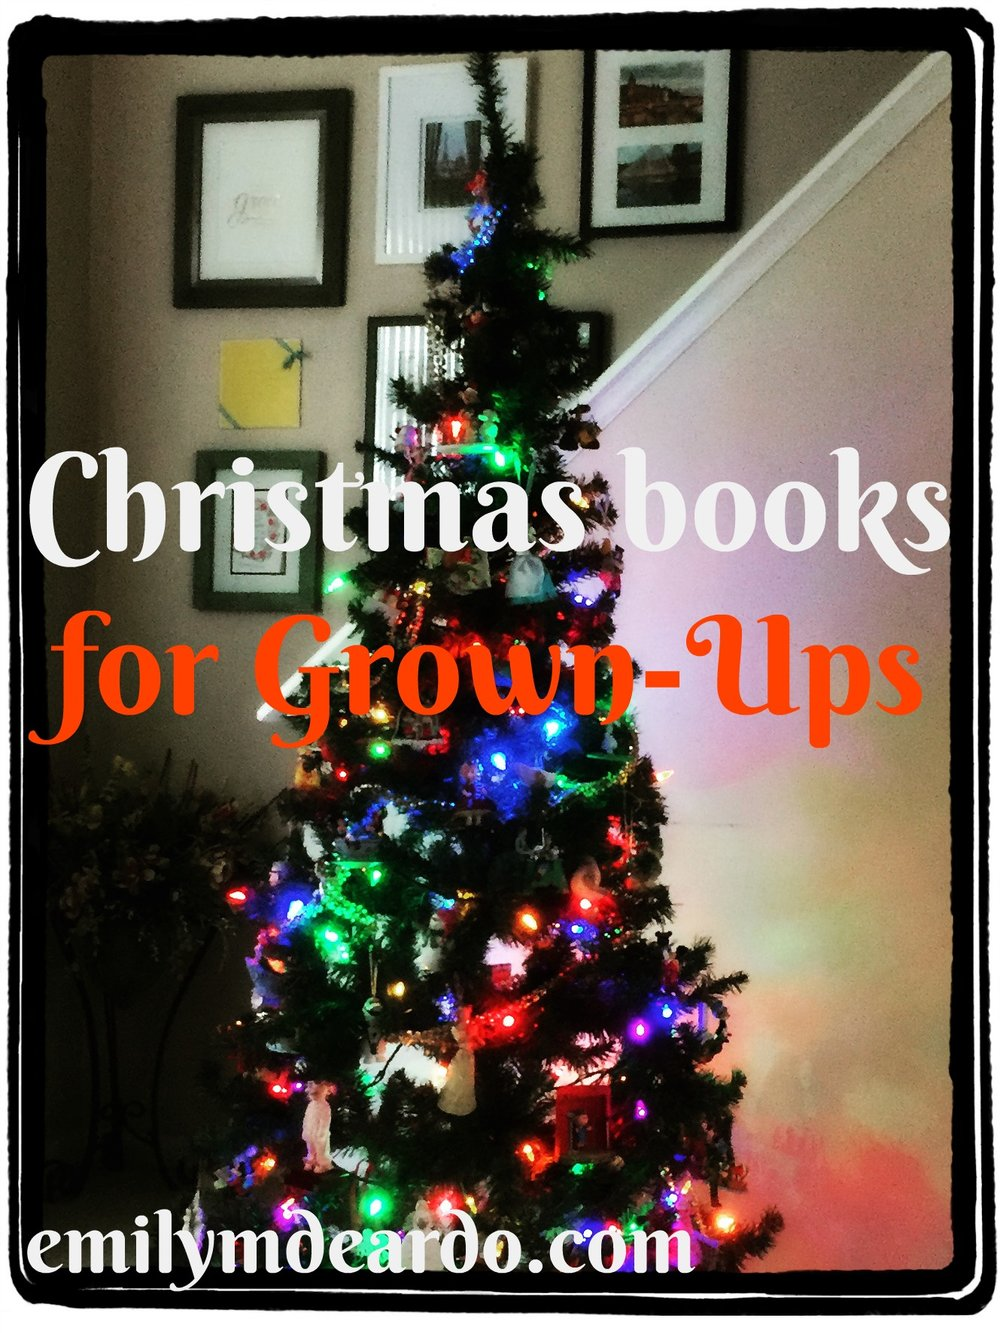 christmas books for grownups tag .jpg